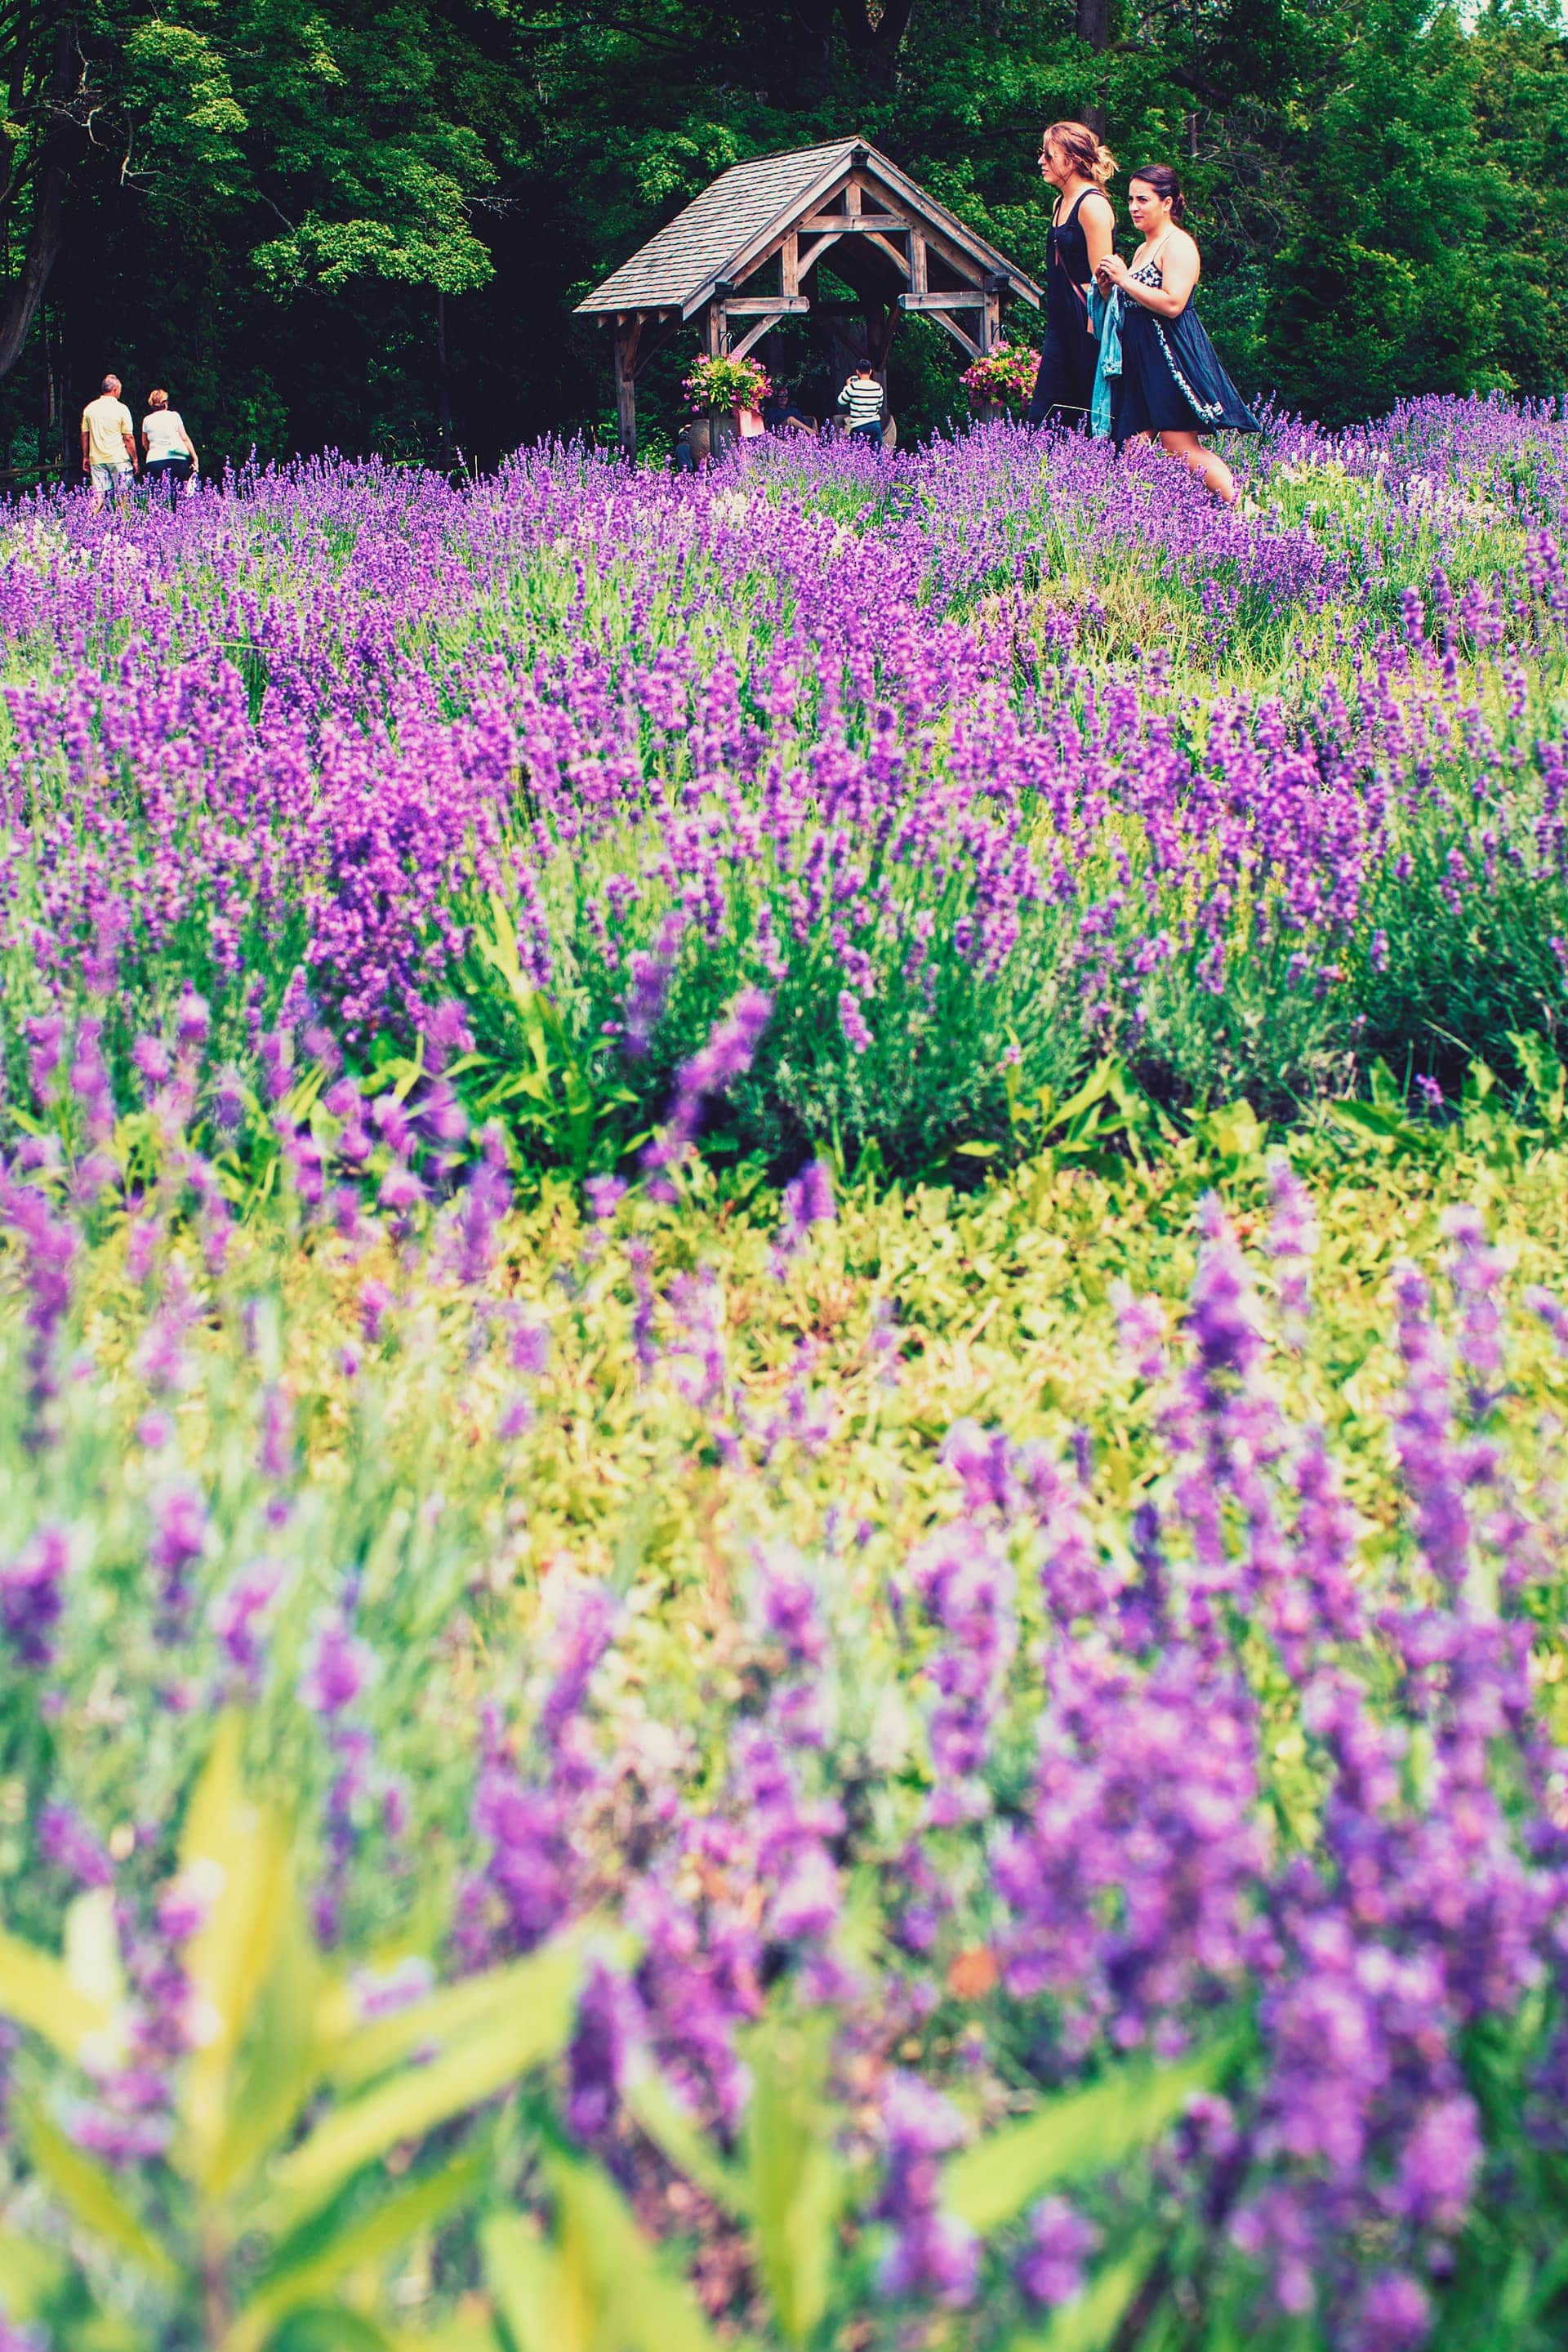 Fields of lavender flowers at Terre Bleu Lavender farm in Milton